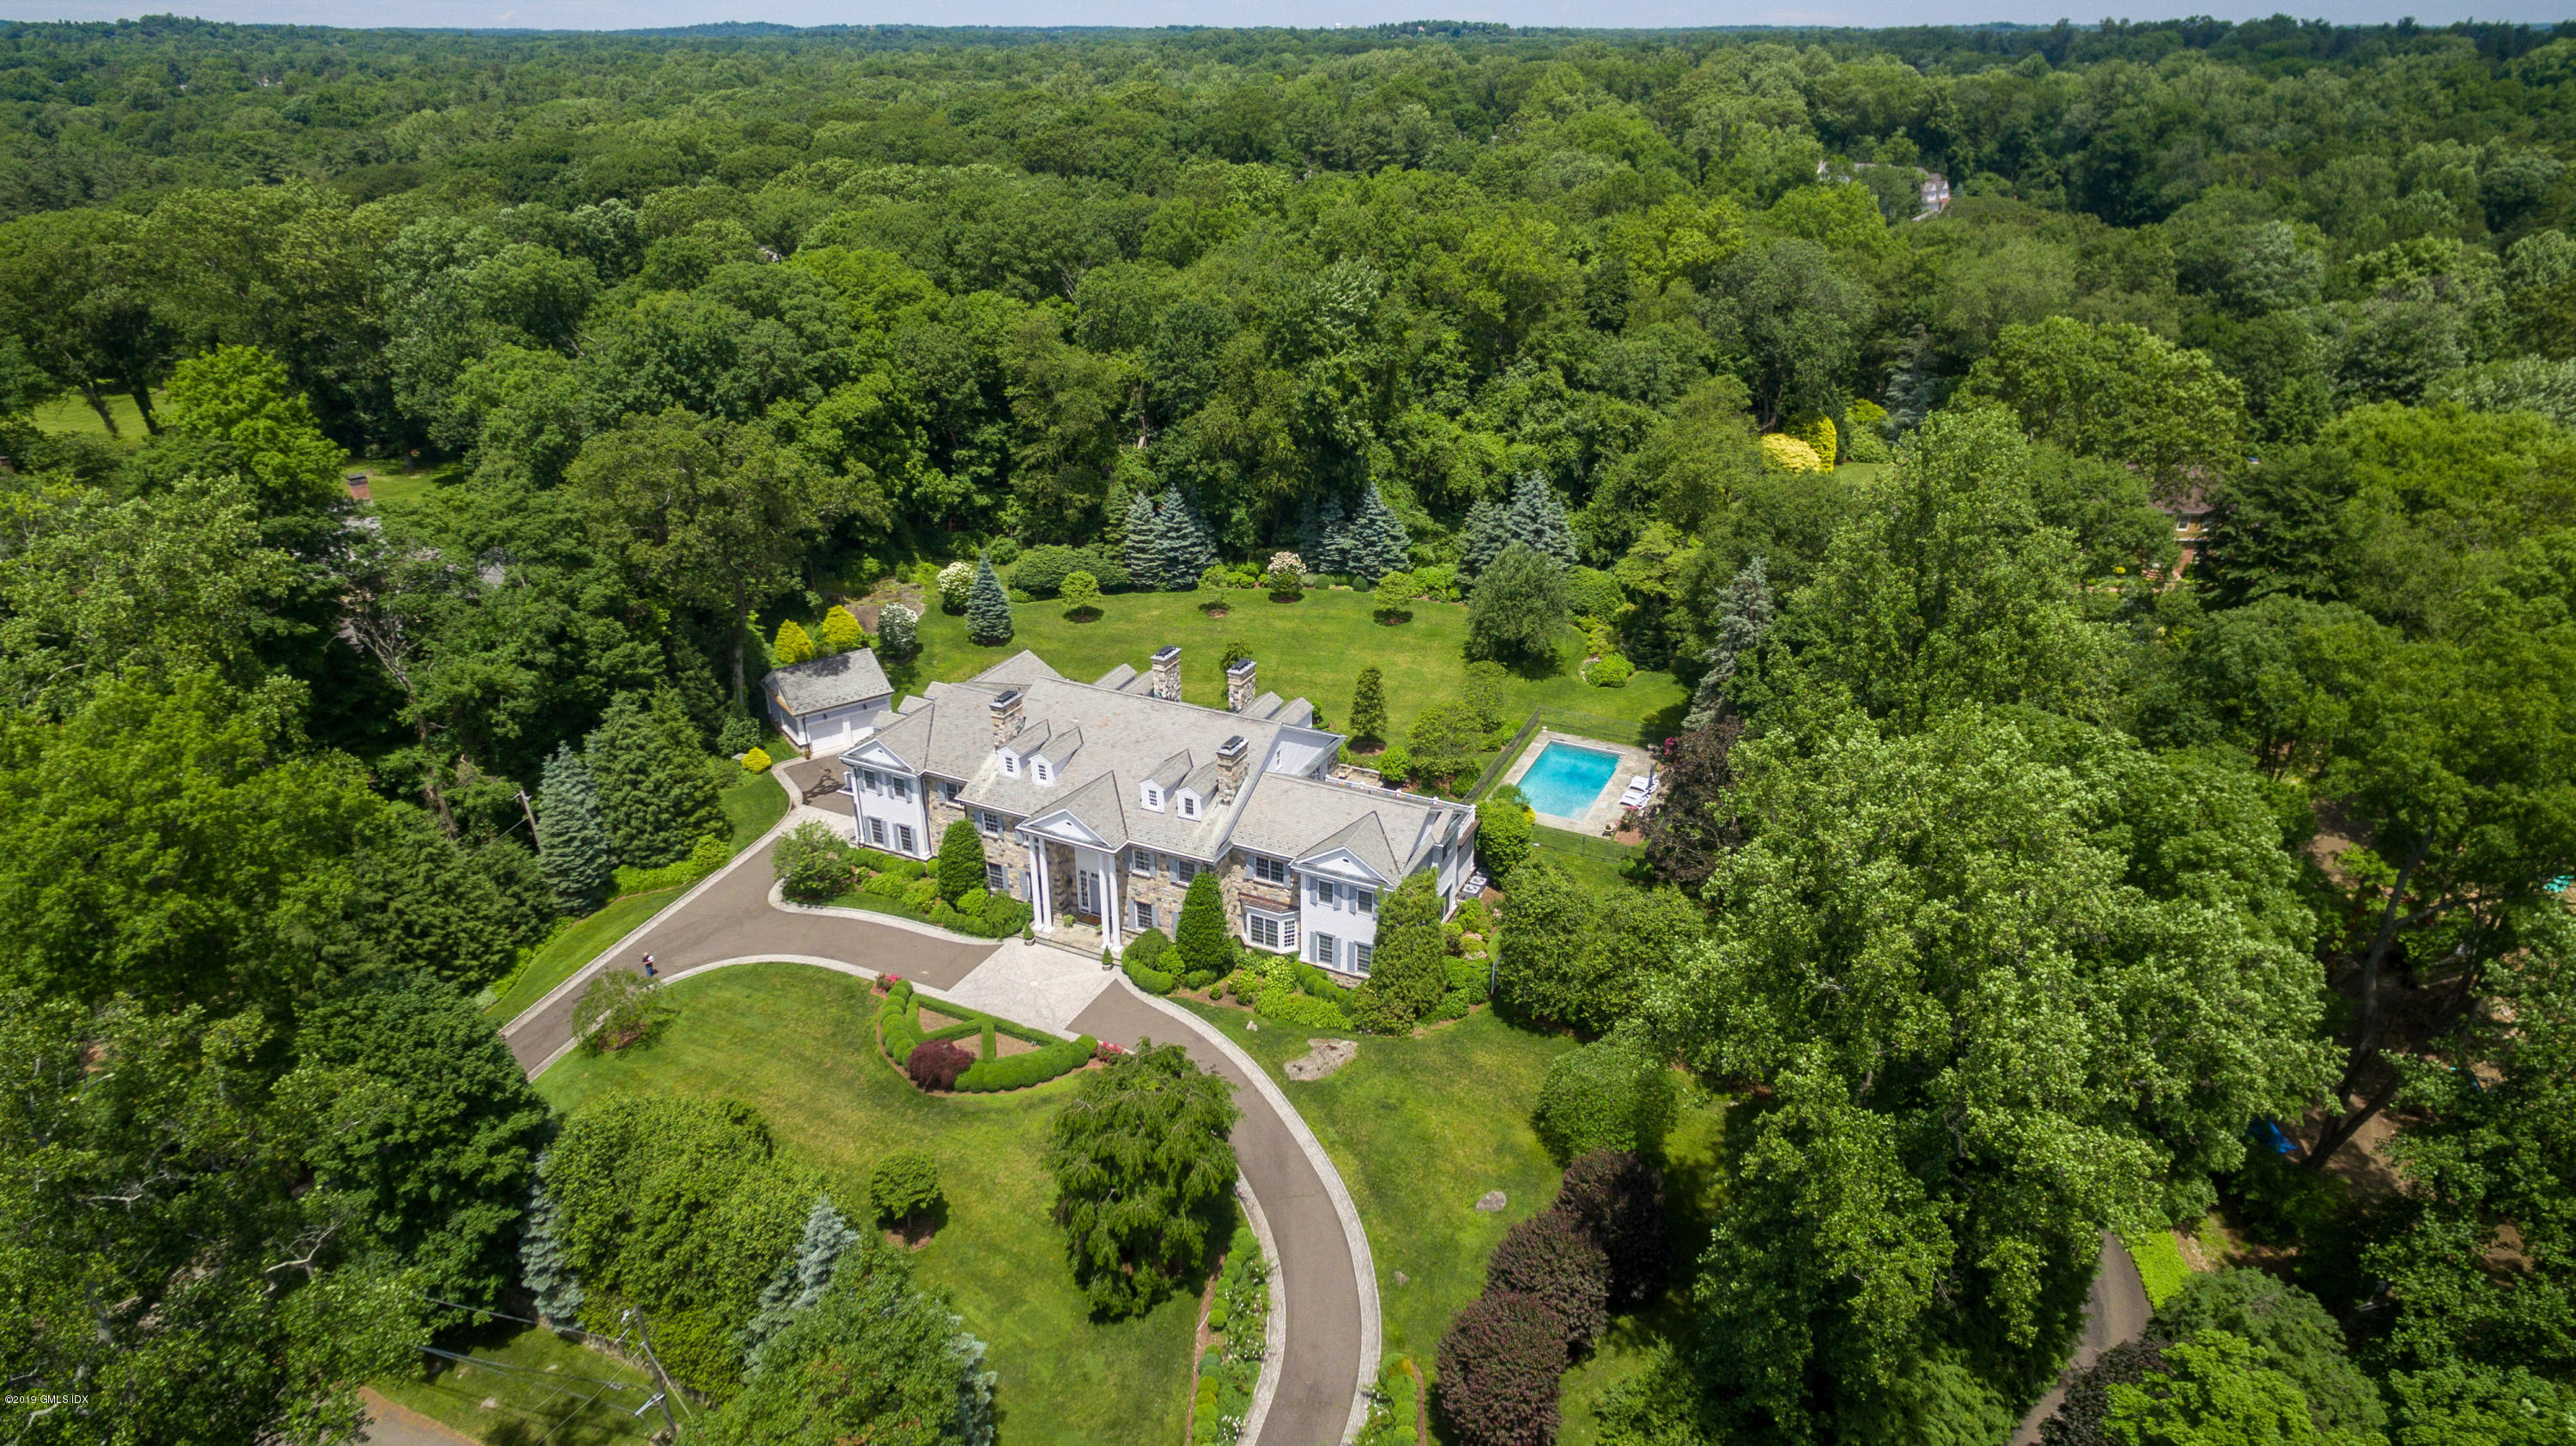 15 Knollwood Drive,Greenwich,Connecticut 06830,7 Bedrooms Bedrooms,9 BathroomsBathrooms,Single family,Knollwood,107024